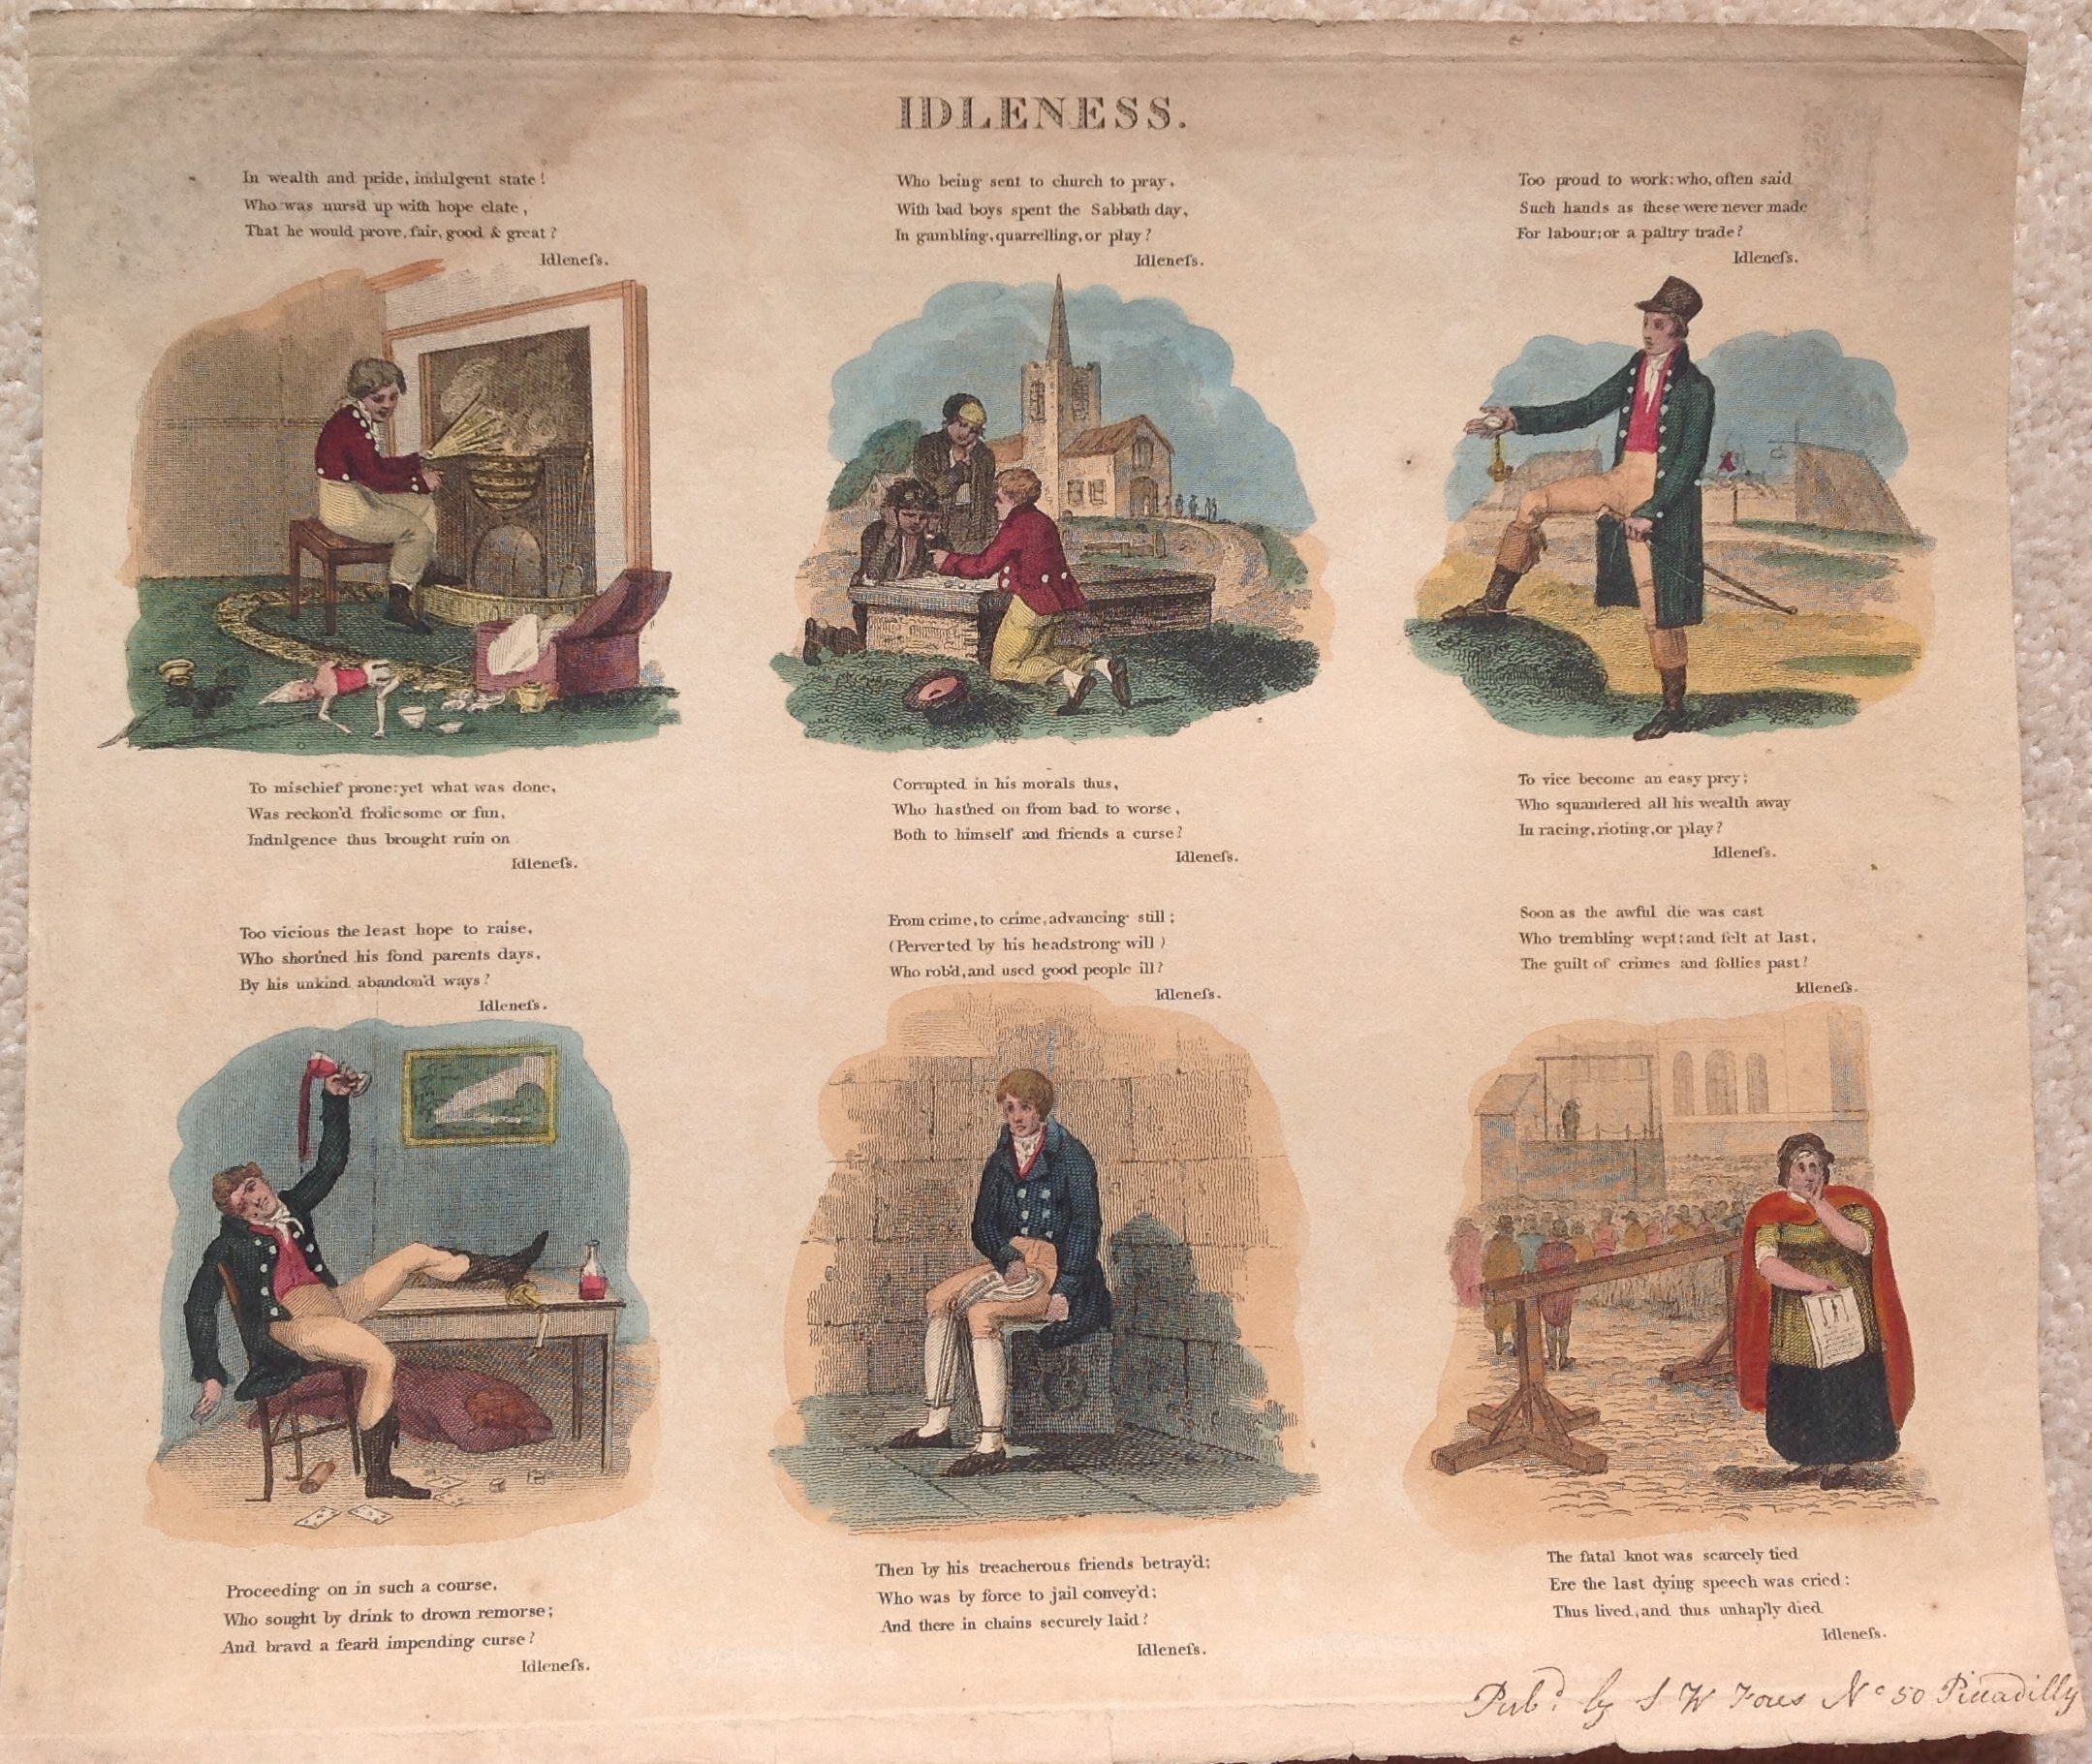 industry idleness re imagined the printshop window charles williams industry idleness published by s w fores c 1820